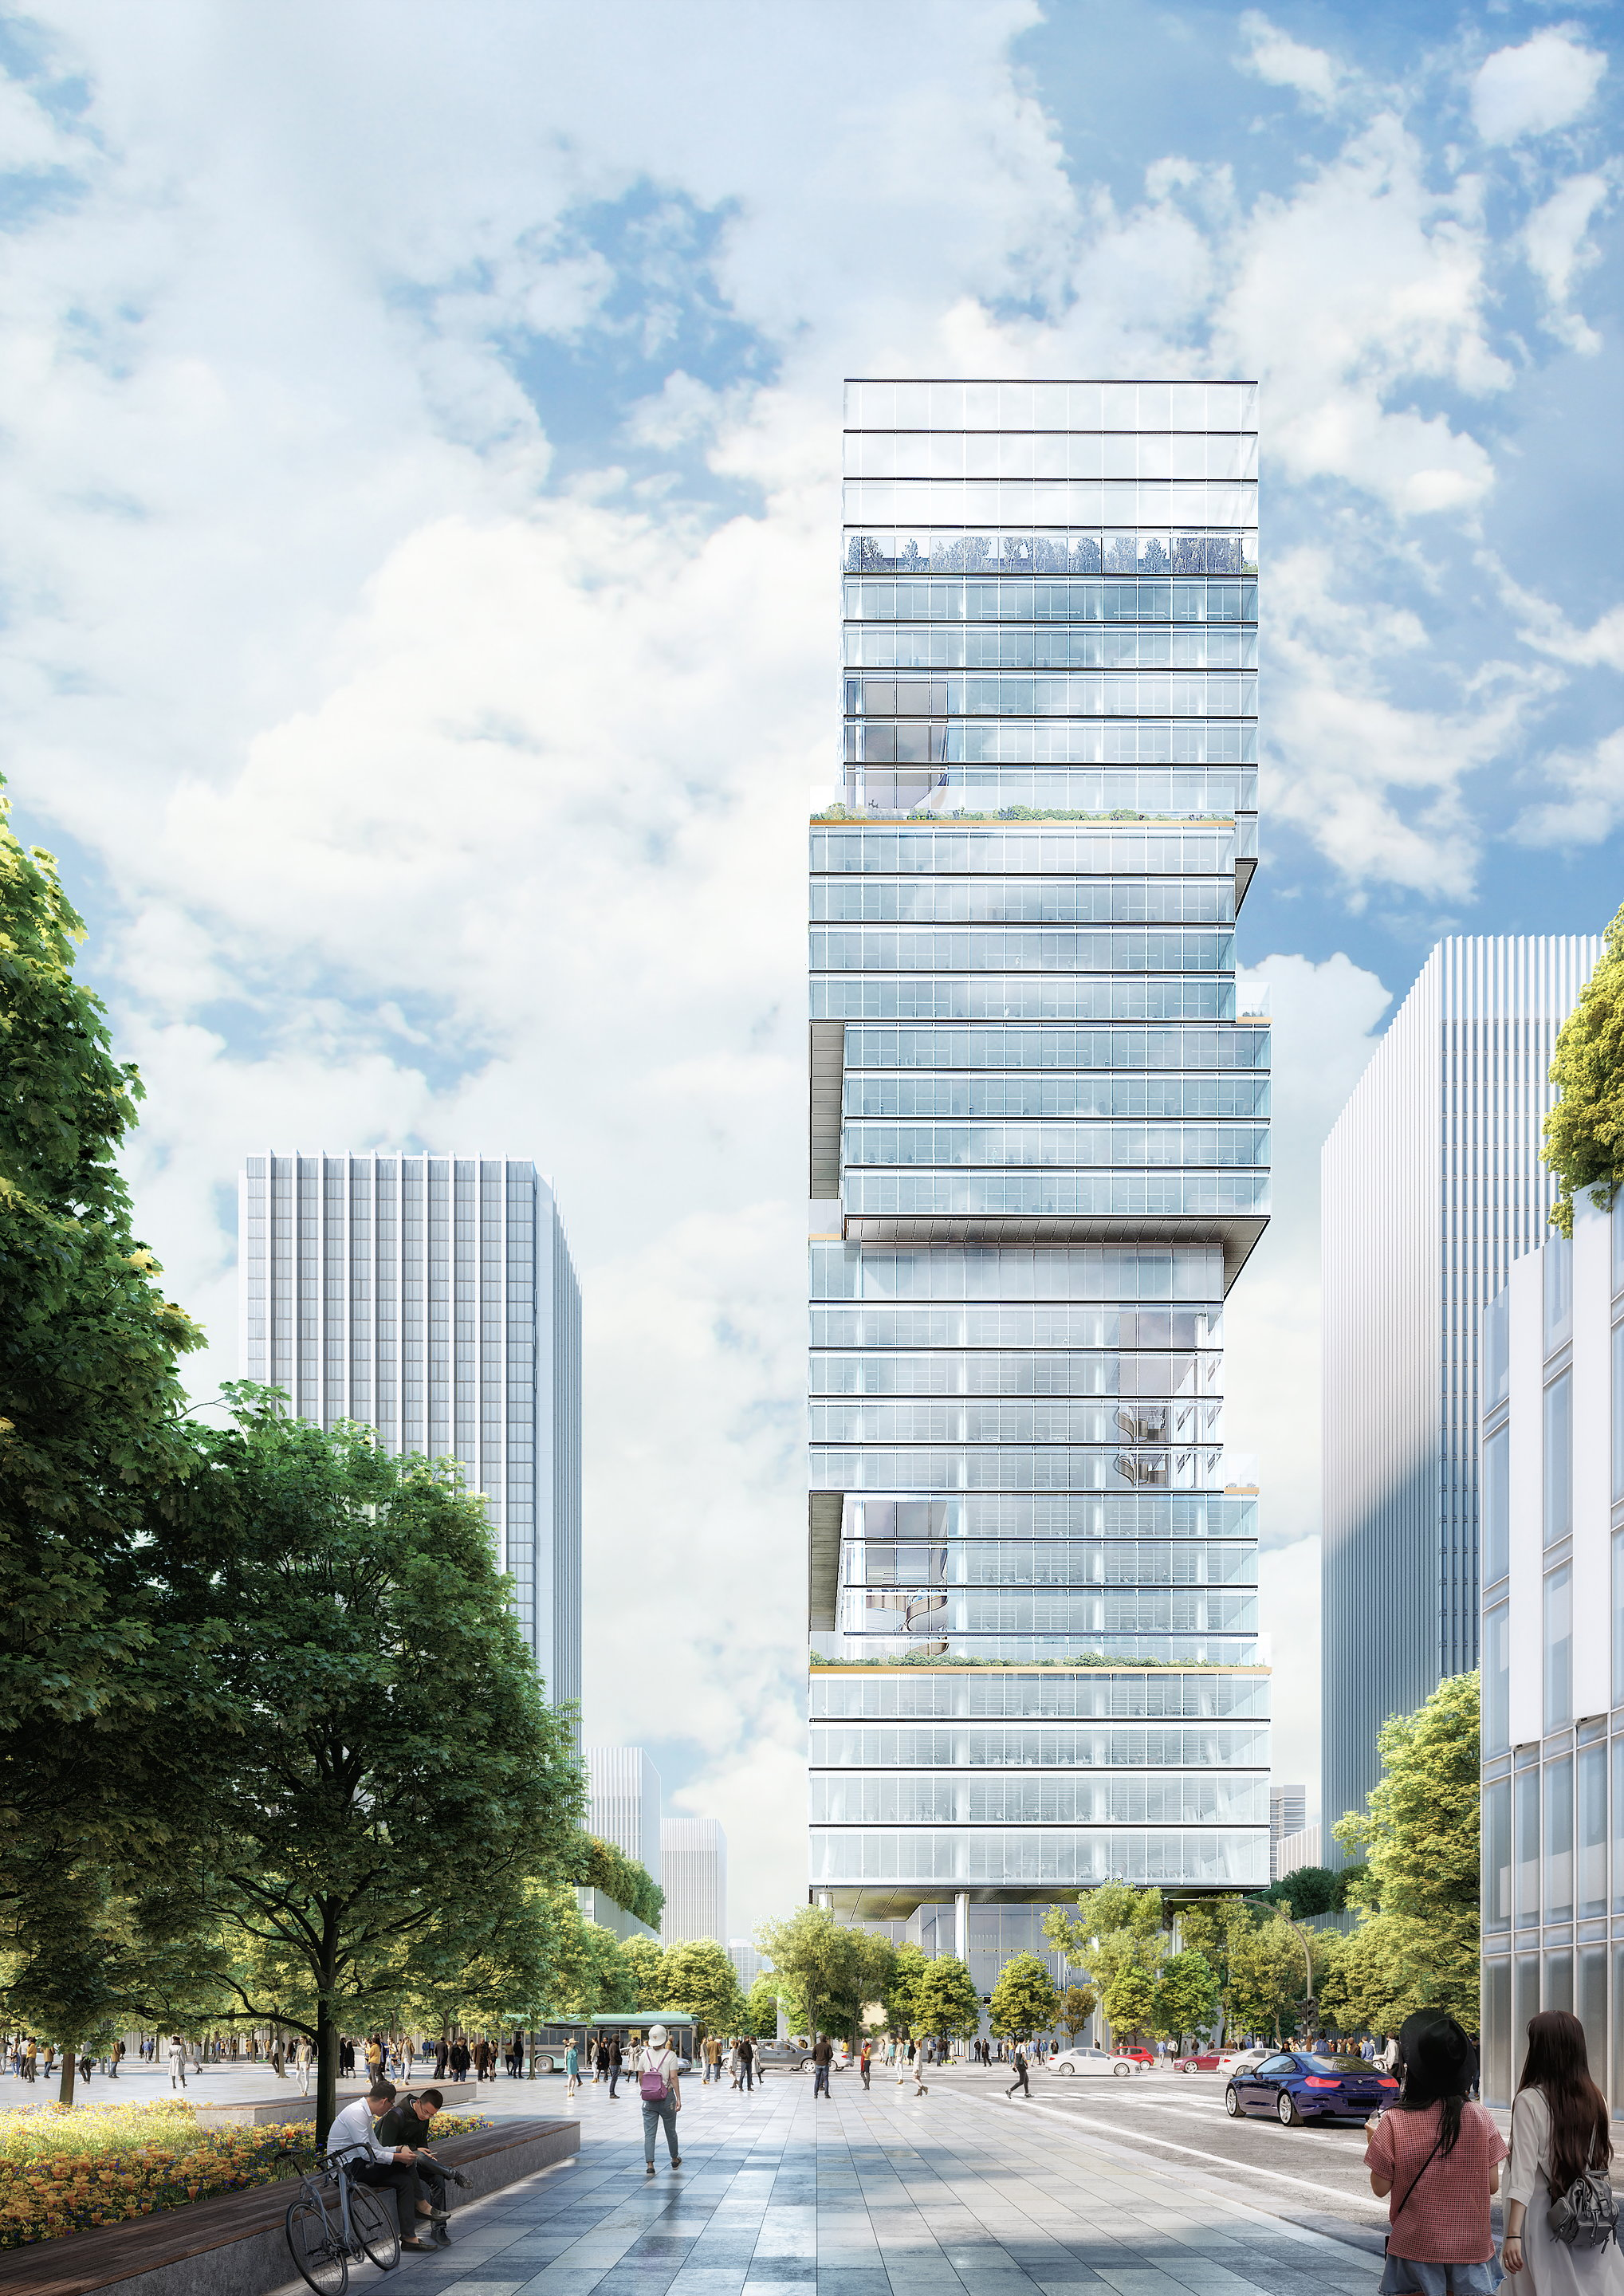 BaoAn Bay Industrial Investment Tower